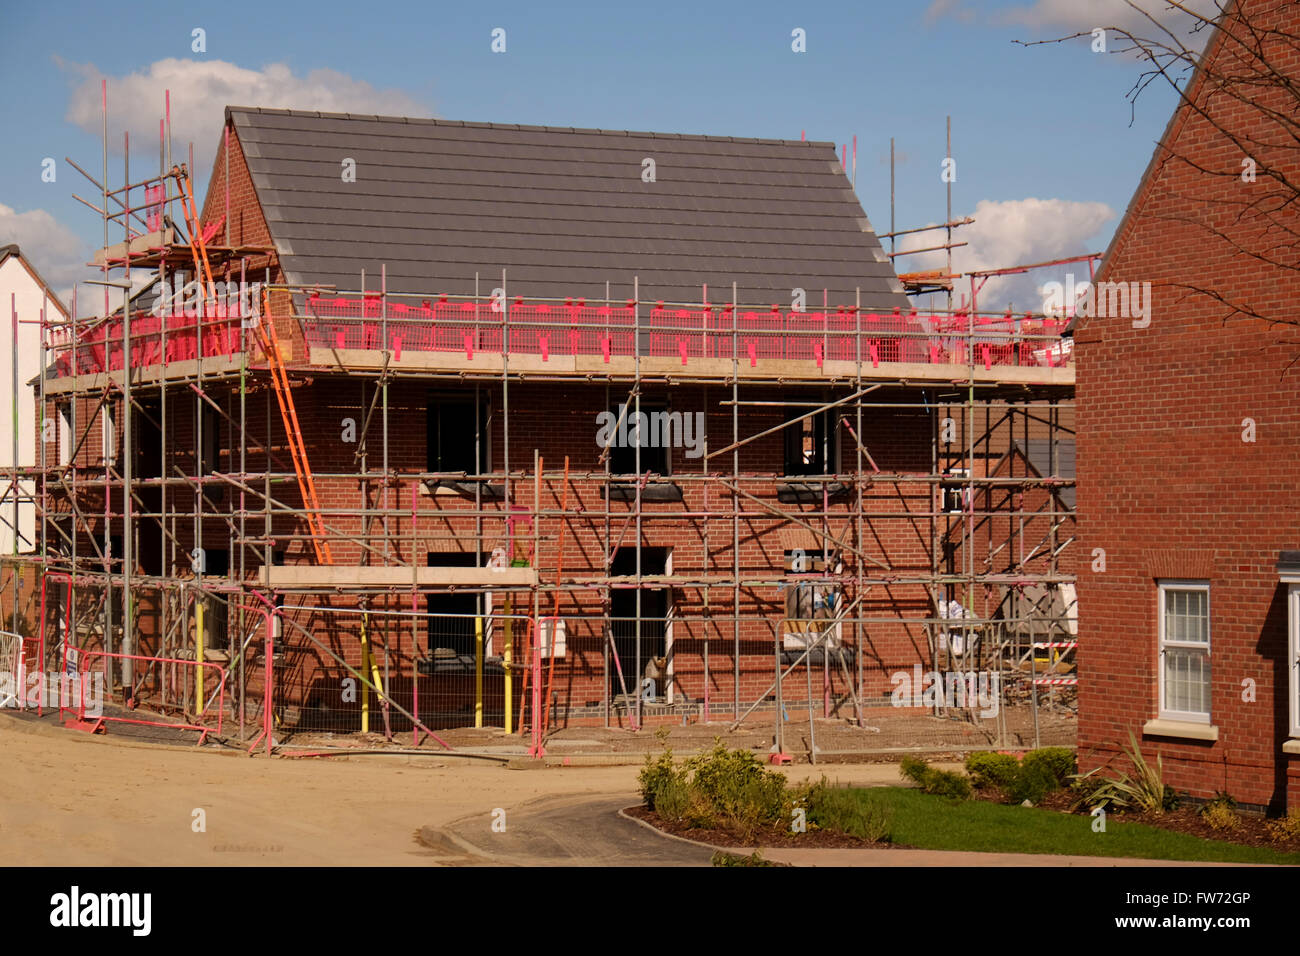 New house covered in scaffolding, Grantham, Lincolnshire, England, UK Stock Photo